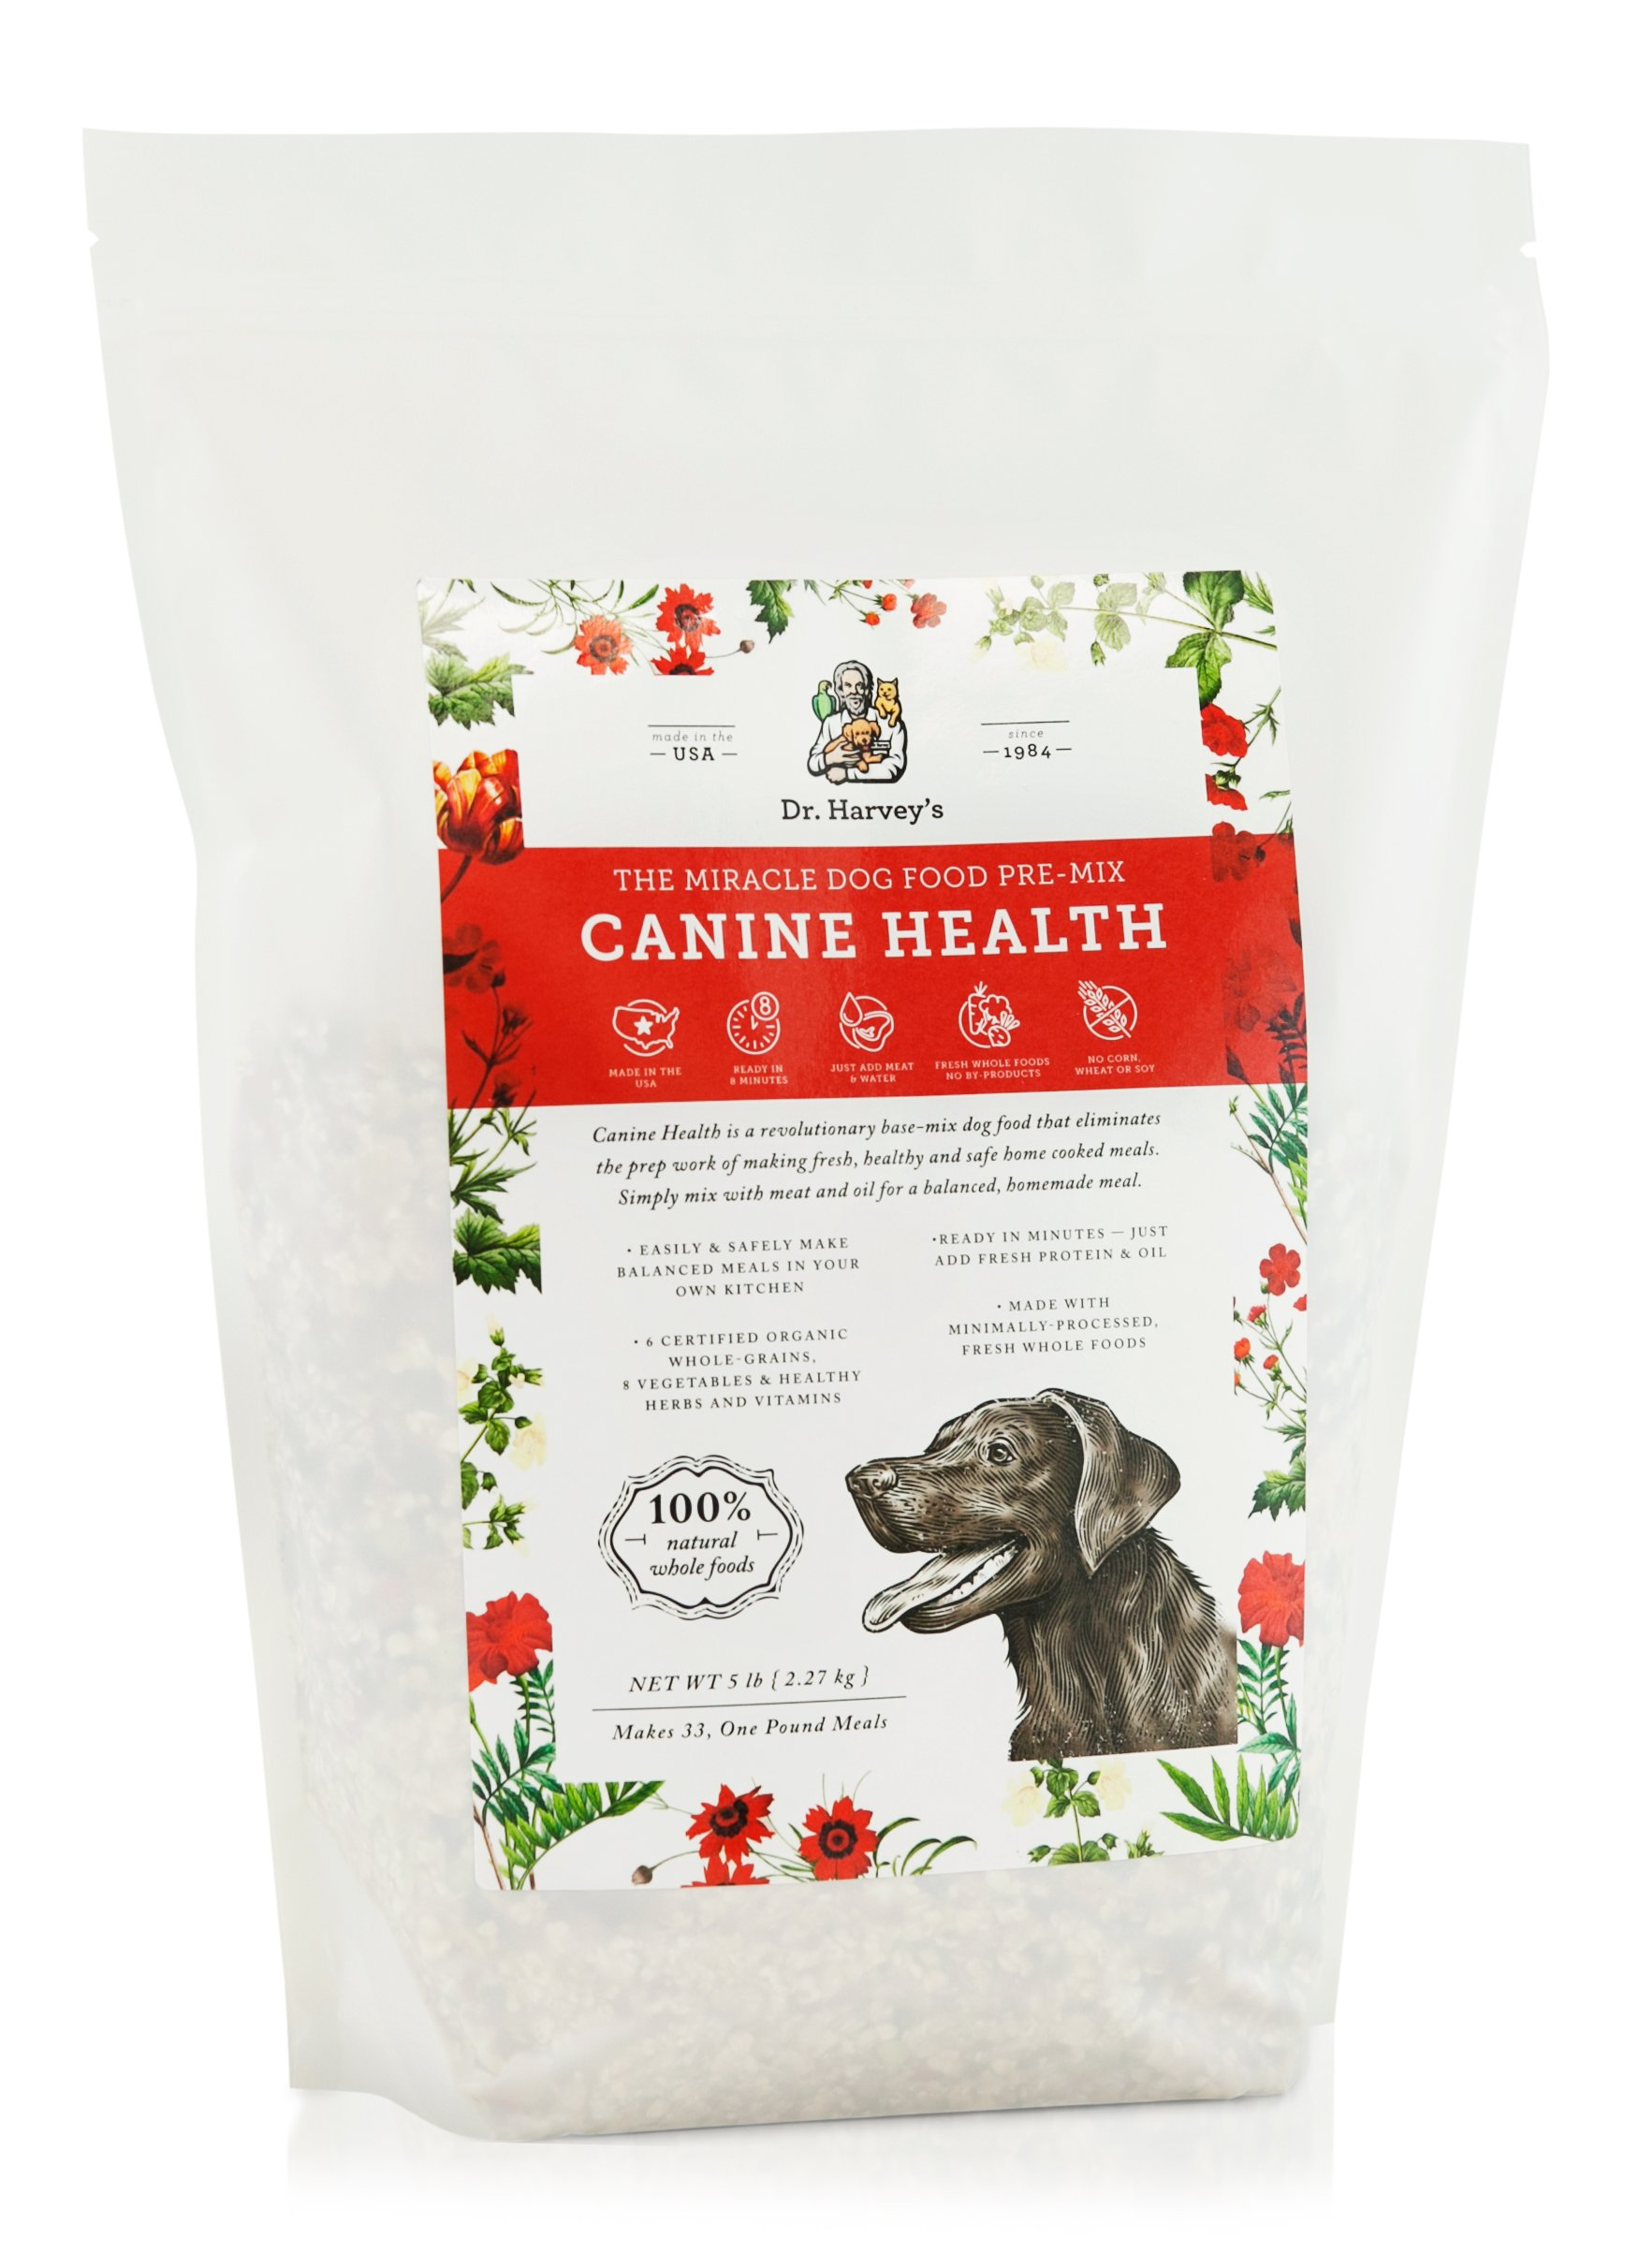 Dr. Harvey's Canine Health Miracle Dog Food, Human Grade Dehydrated Base Mix for Dogs with Organic Whole Grains and Vegetables 1